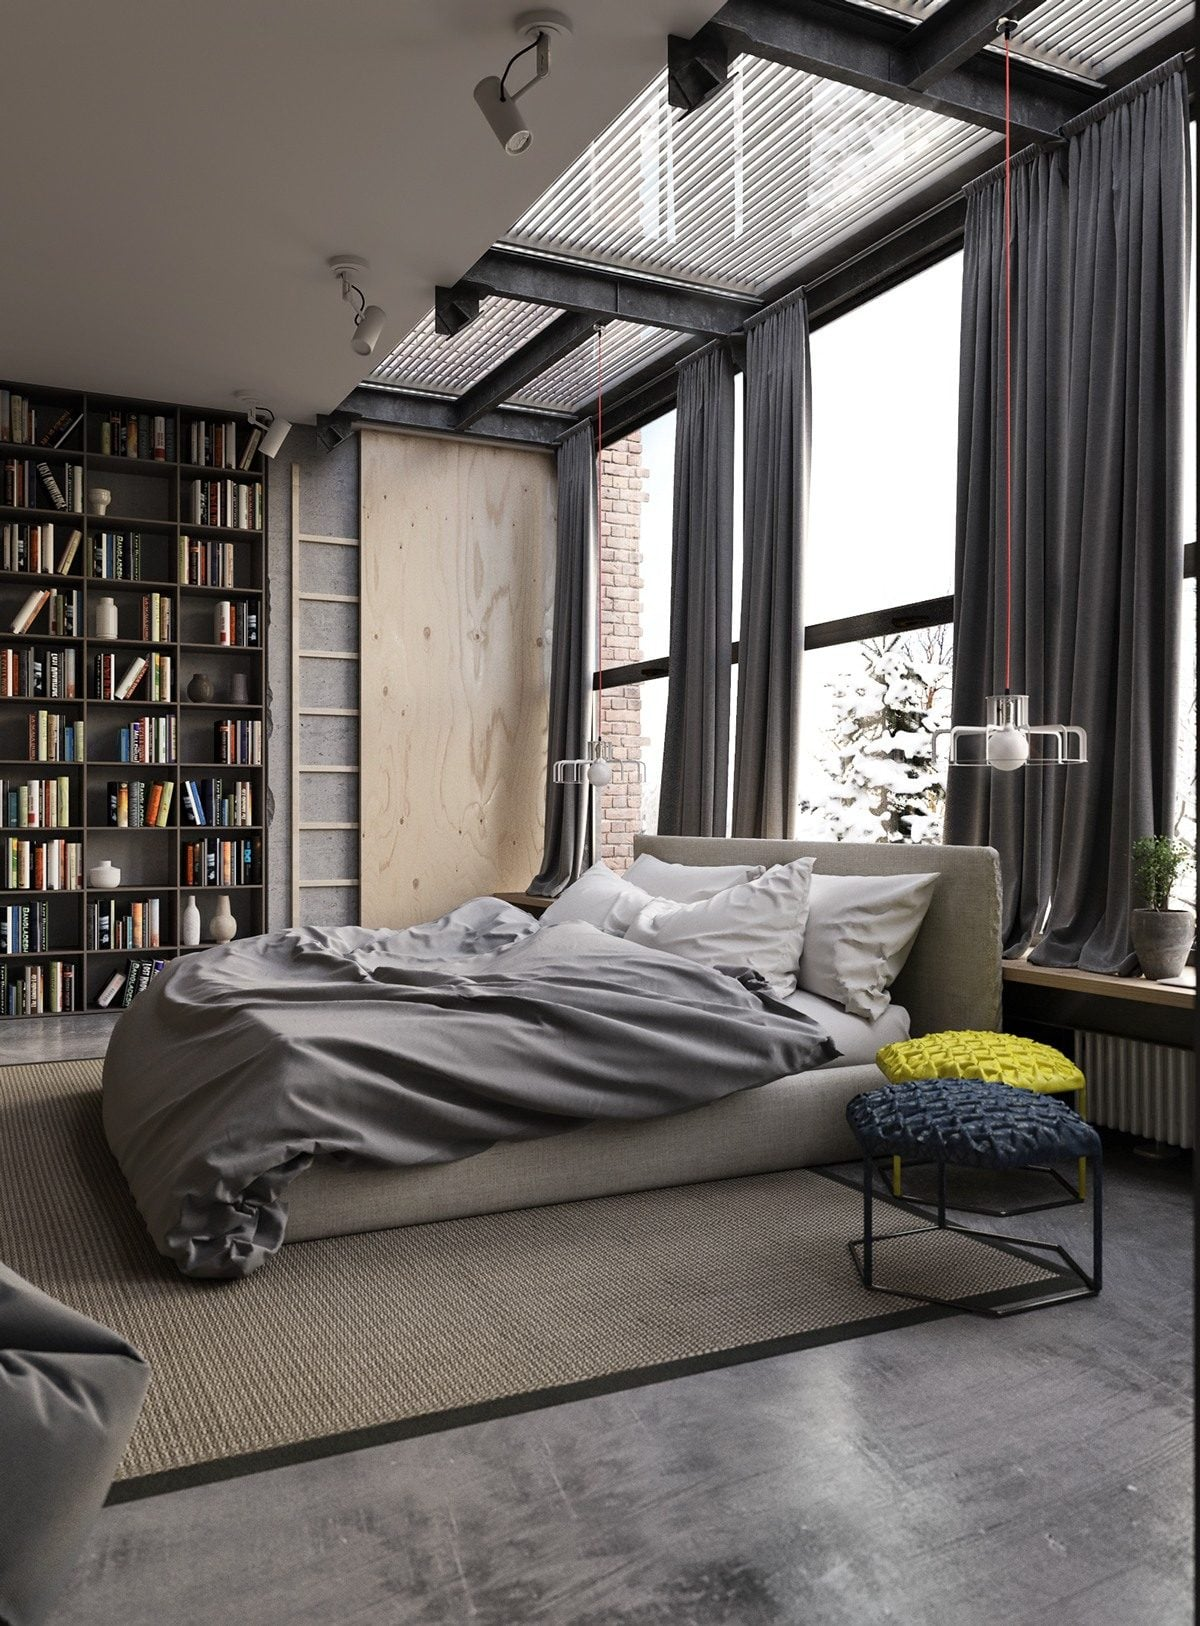 12gray-industrial-bedroom-decor